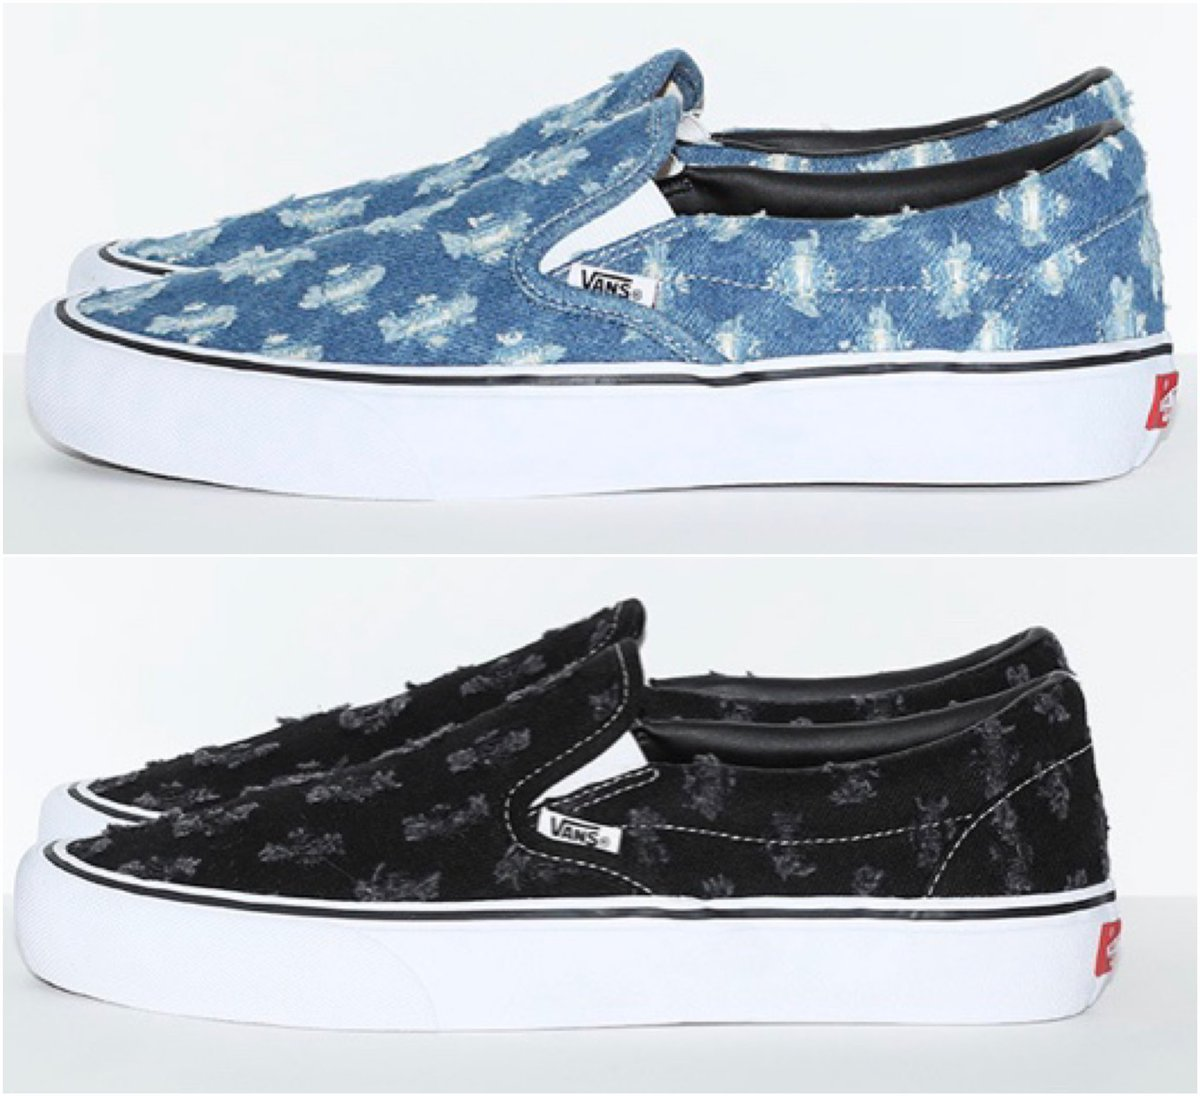 """Supreme/Vans """"Hole Punch Denim""""  Slip On Pro $98 Sk8-Hi Pro $110  Releasing this Thursday, July 9th. After seeing the official images which model is your favorite?"""